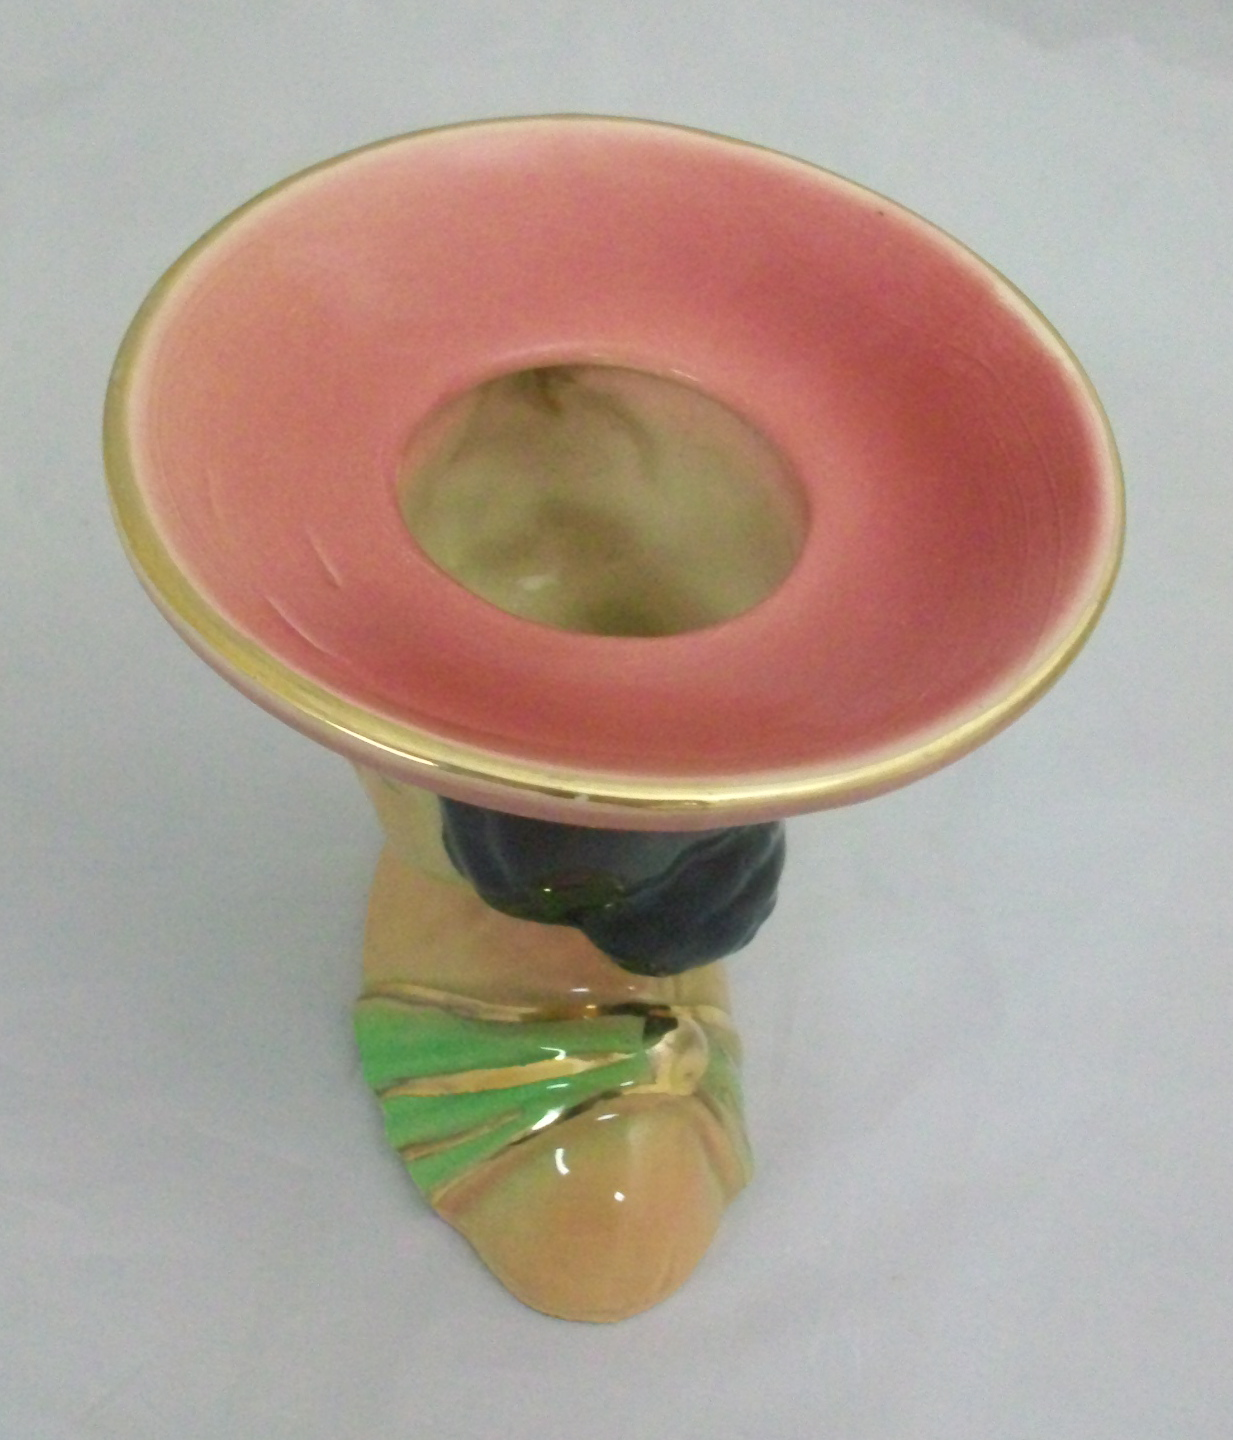 Shawnee polynesian lady head vase 896 for sale antiques shawnee polynesian head vase with gold accents lady wears a pink hat a pink flower in her hair and a green dress mark on bottom reads shawnee usa reviewsmspy